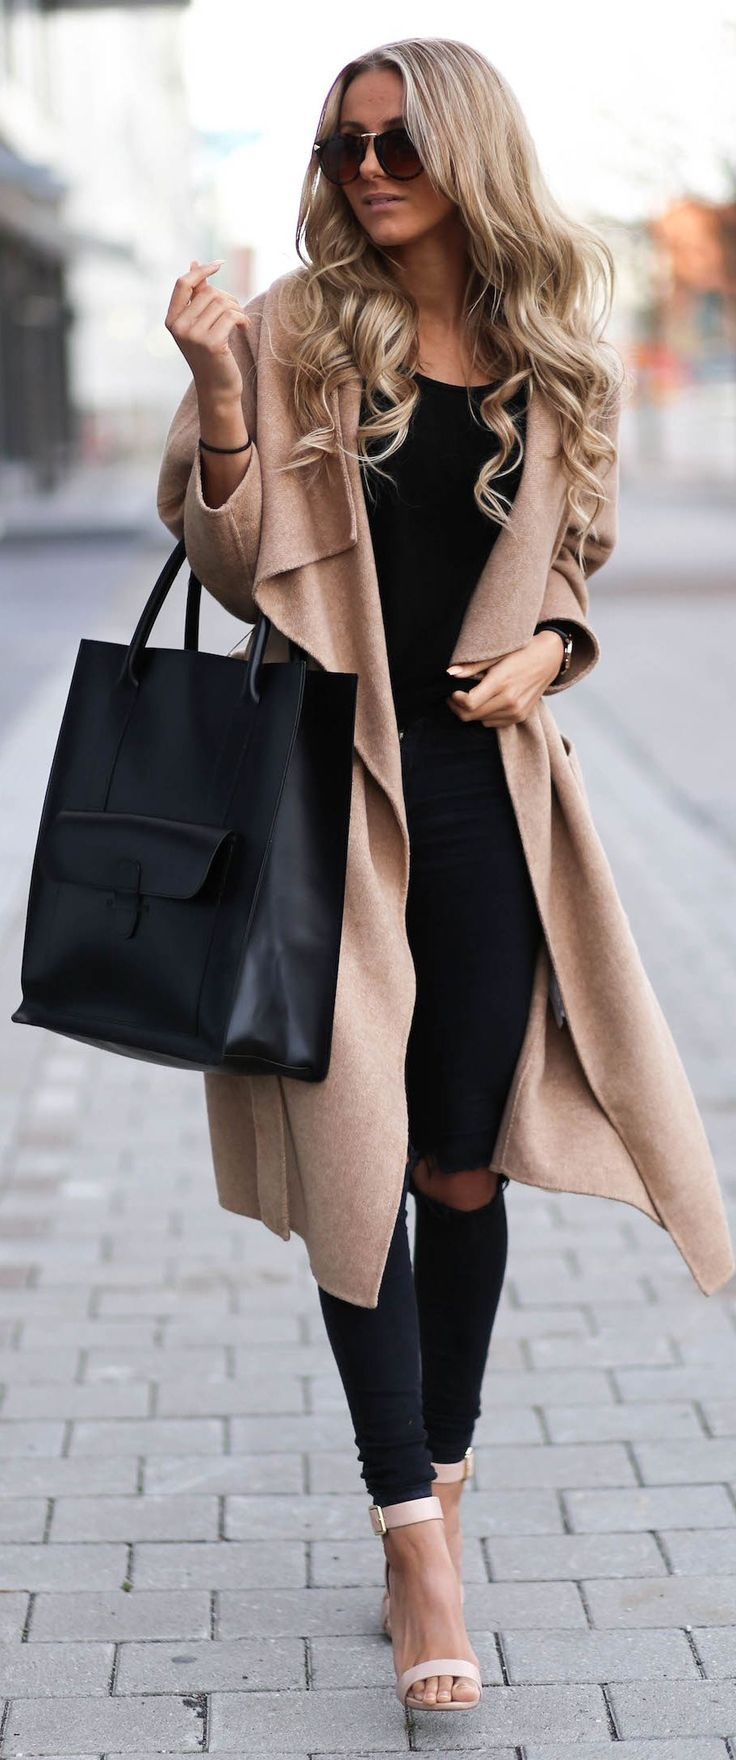 Shop this look on Lookastic:  http://lookastic.com/women/looks/sunglasses-coat-tank-tote-bag-skinny-jeans-heeled-sandals/6095  — Dark Brown Sunglasses  — Camel Coat  — Black Tank  — Black Leather Tote Bag  — Black Ripped Skinny Jeans  — Beige Leather Heeled Sandals